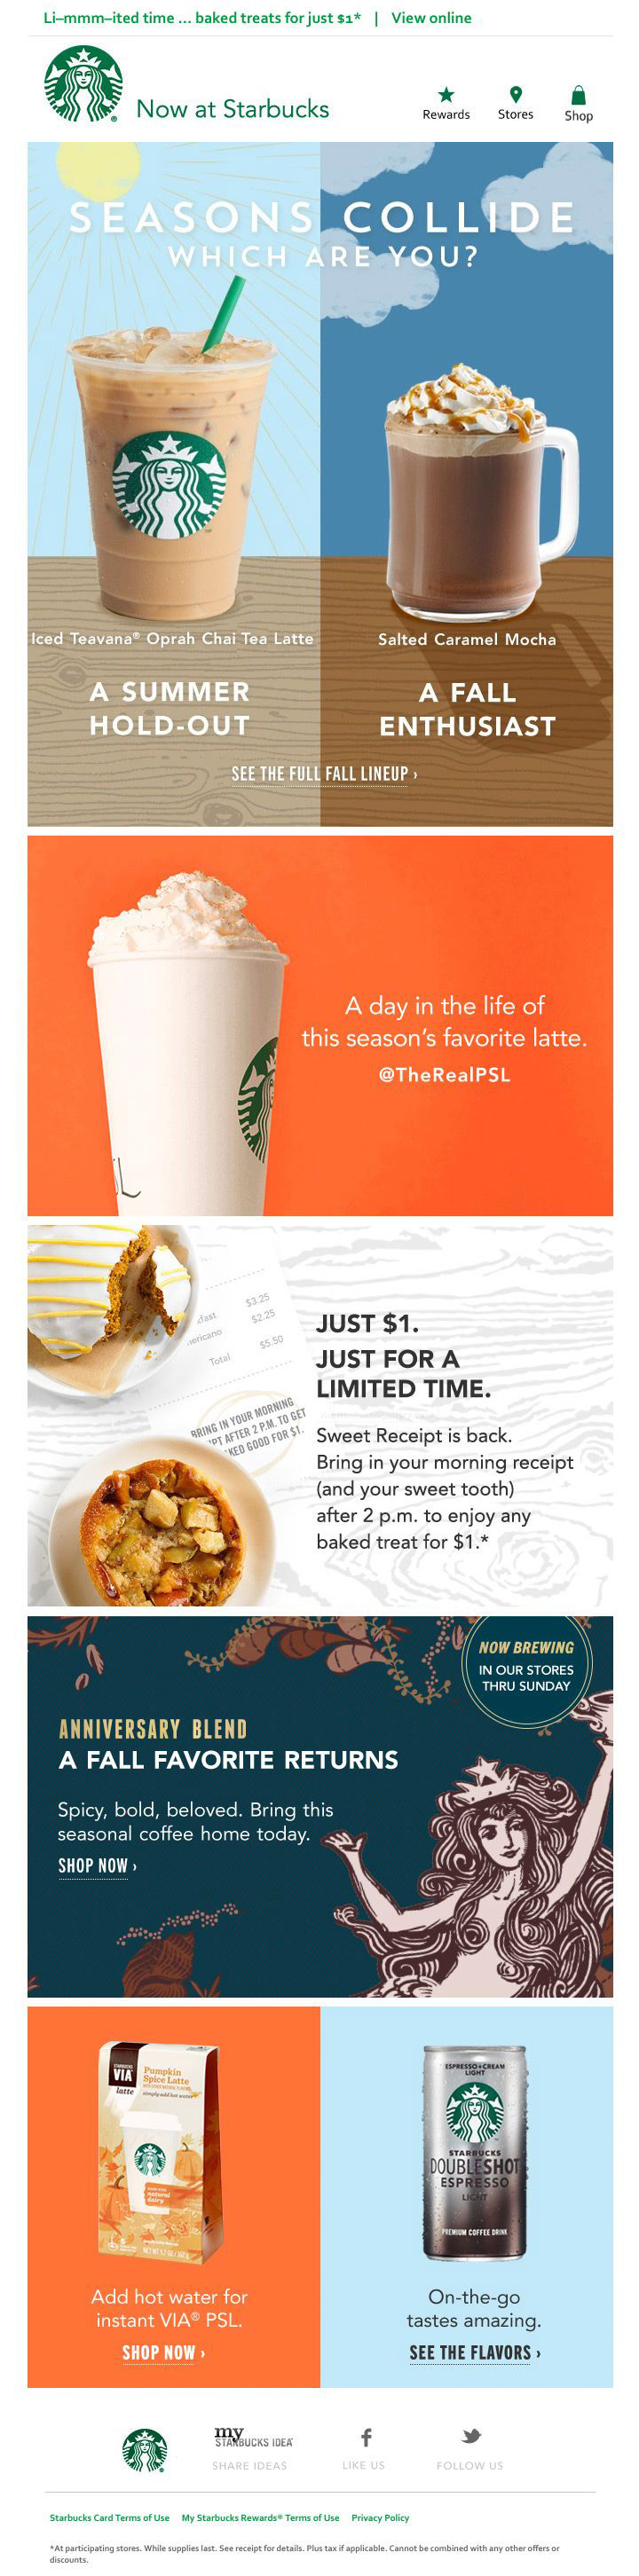 Starbucks Seasons Collide email